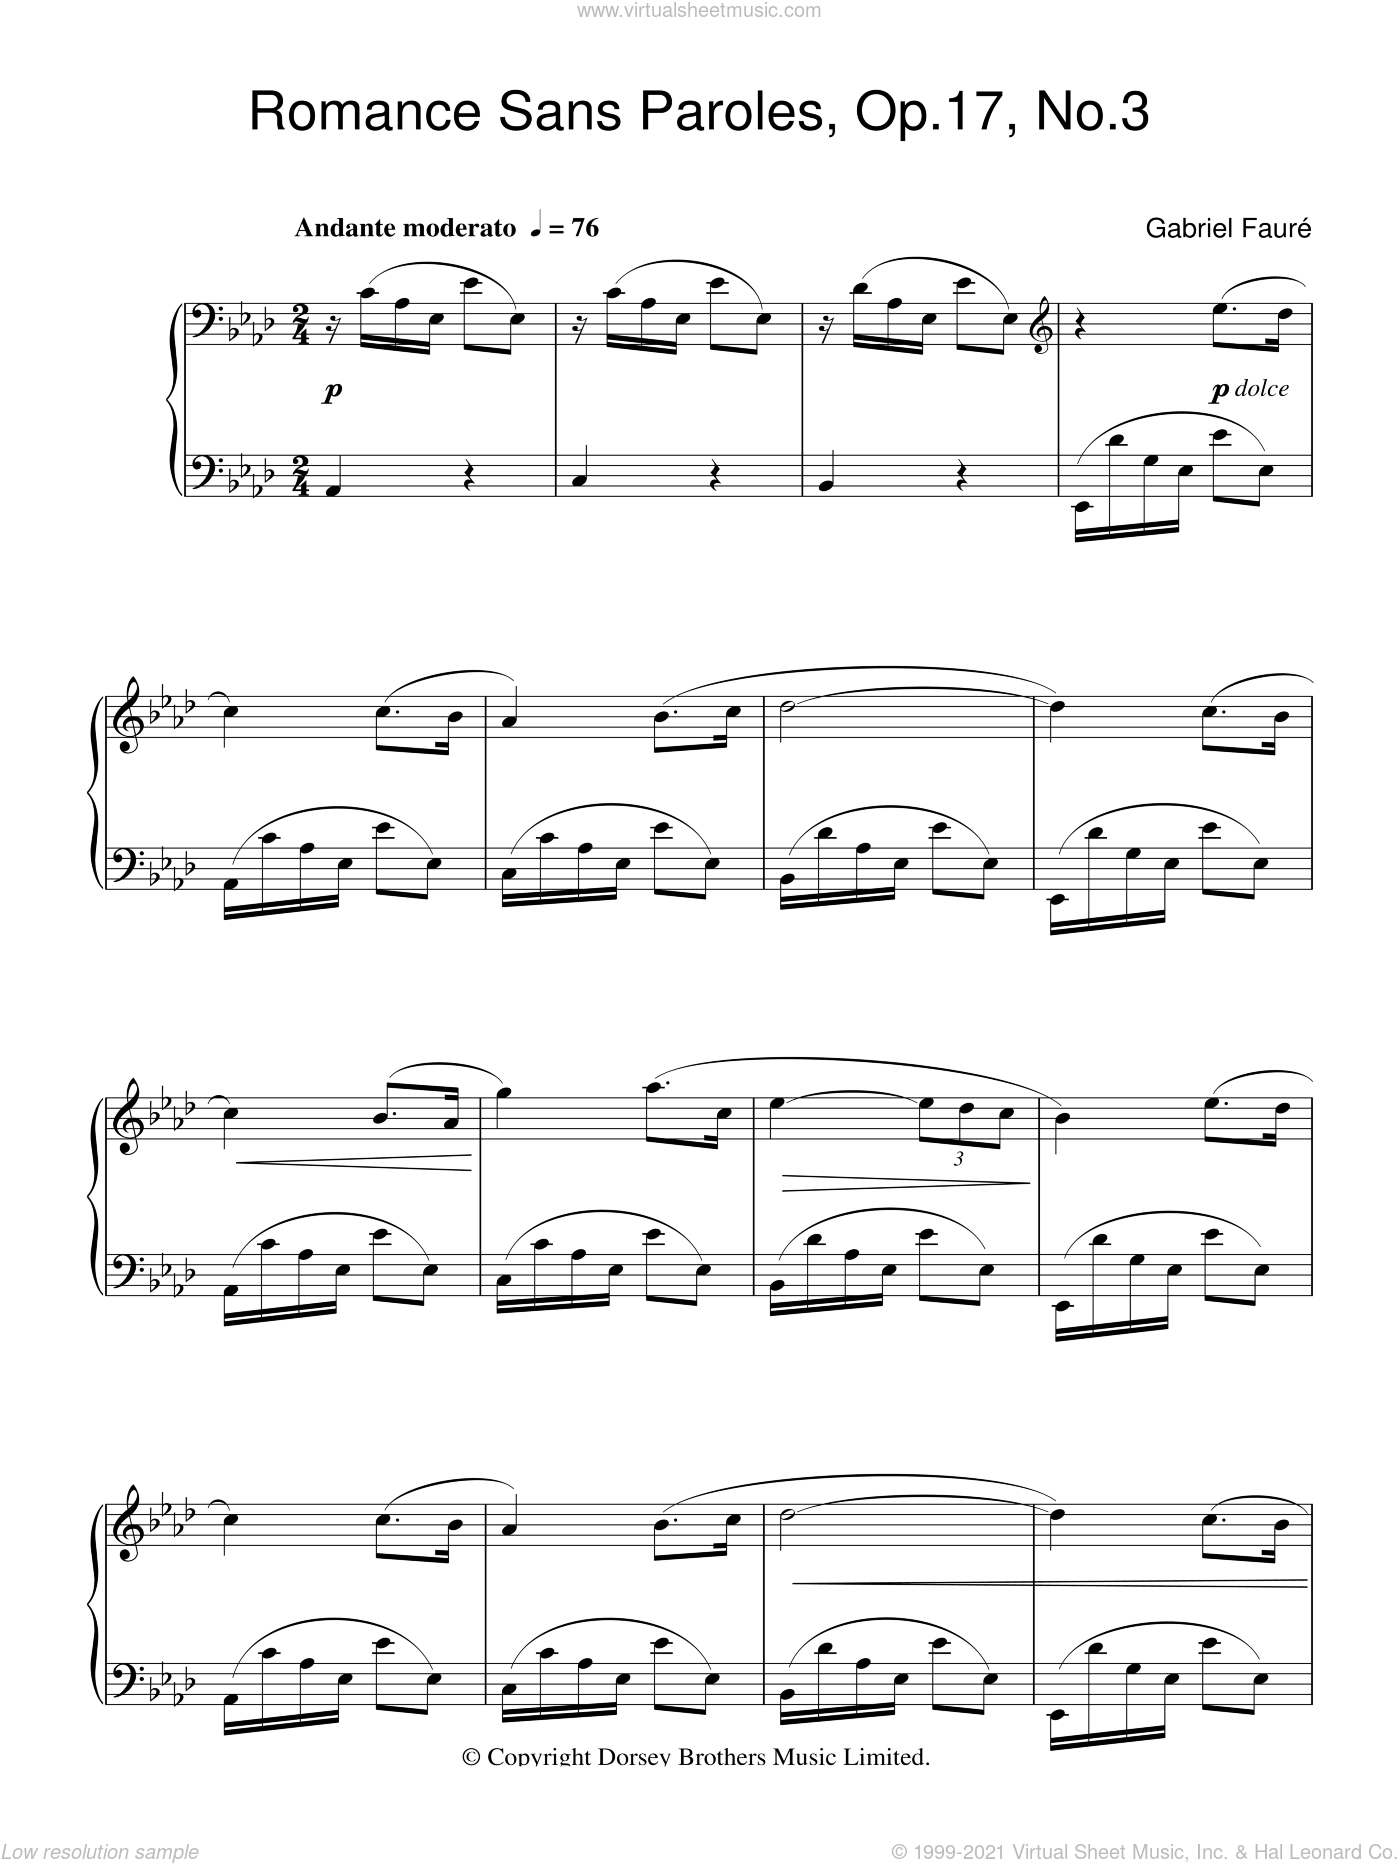 Romance Sans Paroles Op. 17, No. 3 sheet music for piano solo by Gabriel Faure